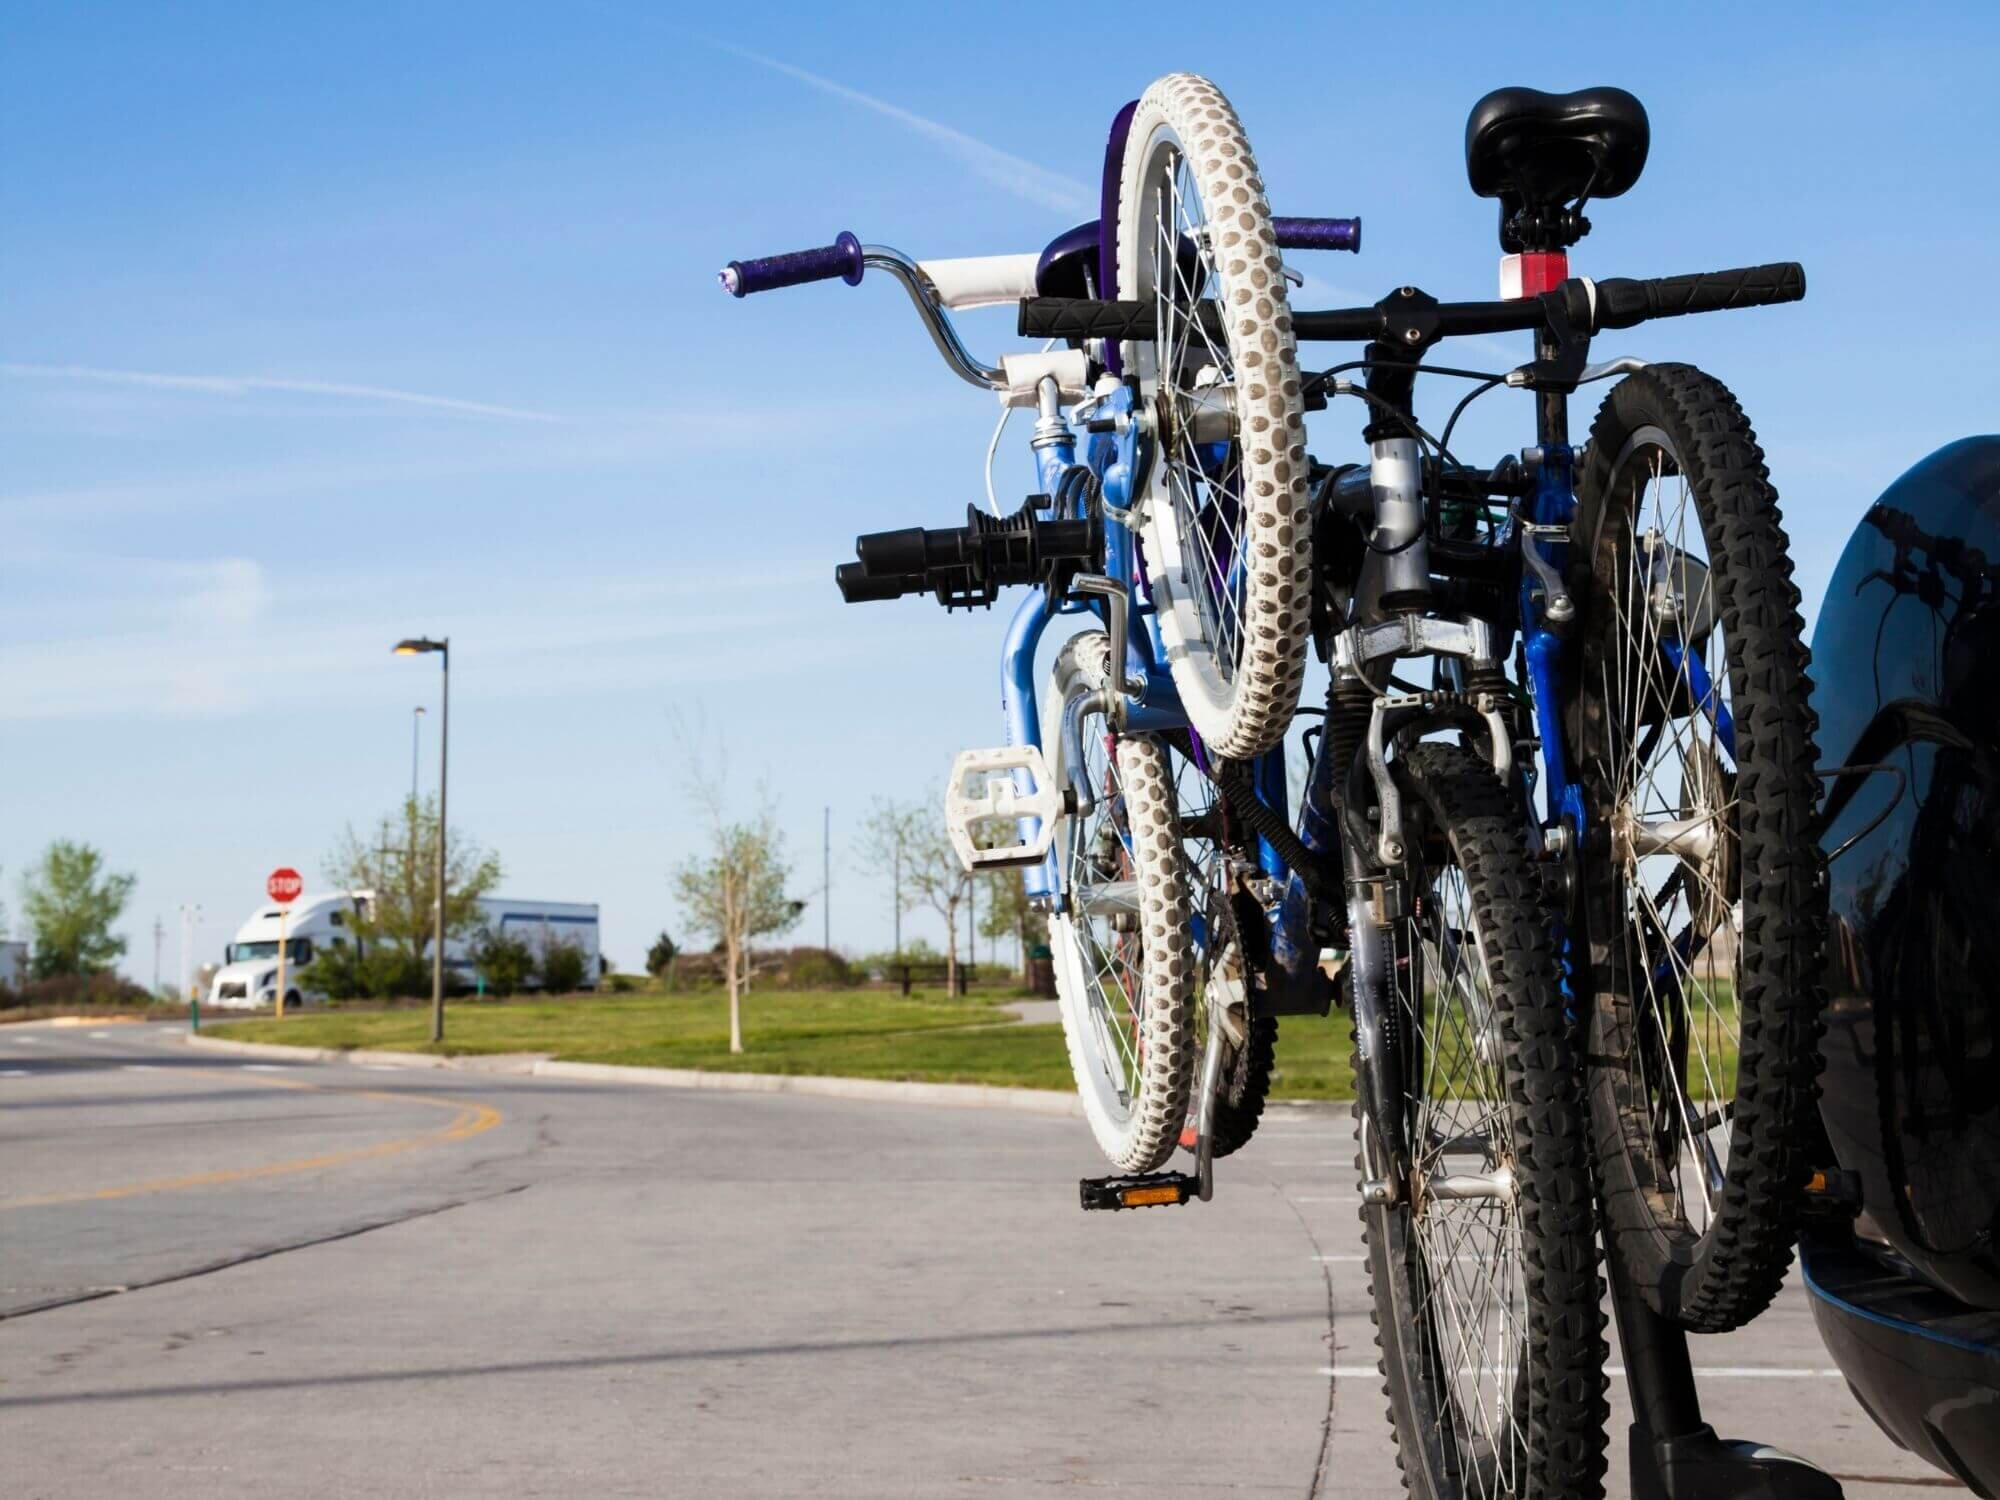 Mast-Style Bike Rack // Learn about different bike rack types for your car from platform racks to hanging racks and more. Plus find a few tips on how to choose the best one for you.